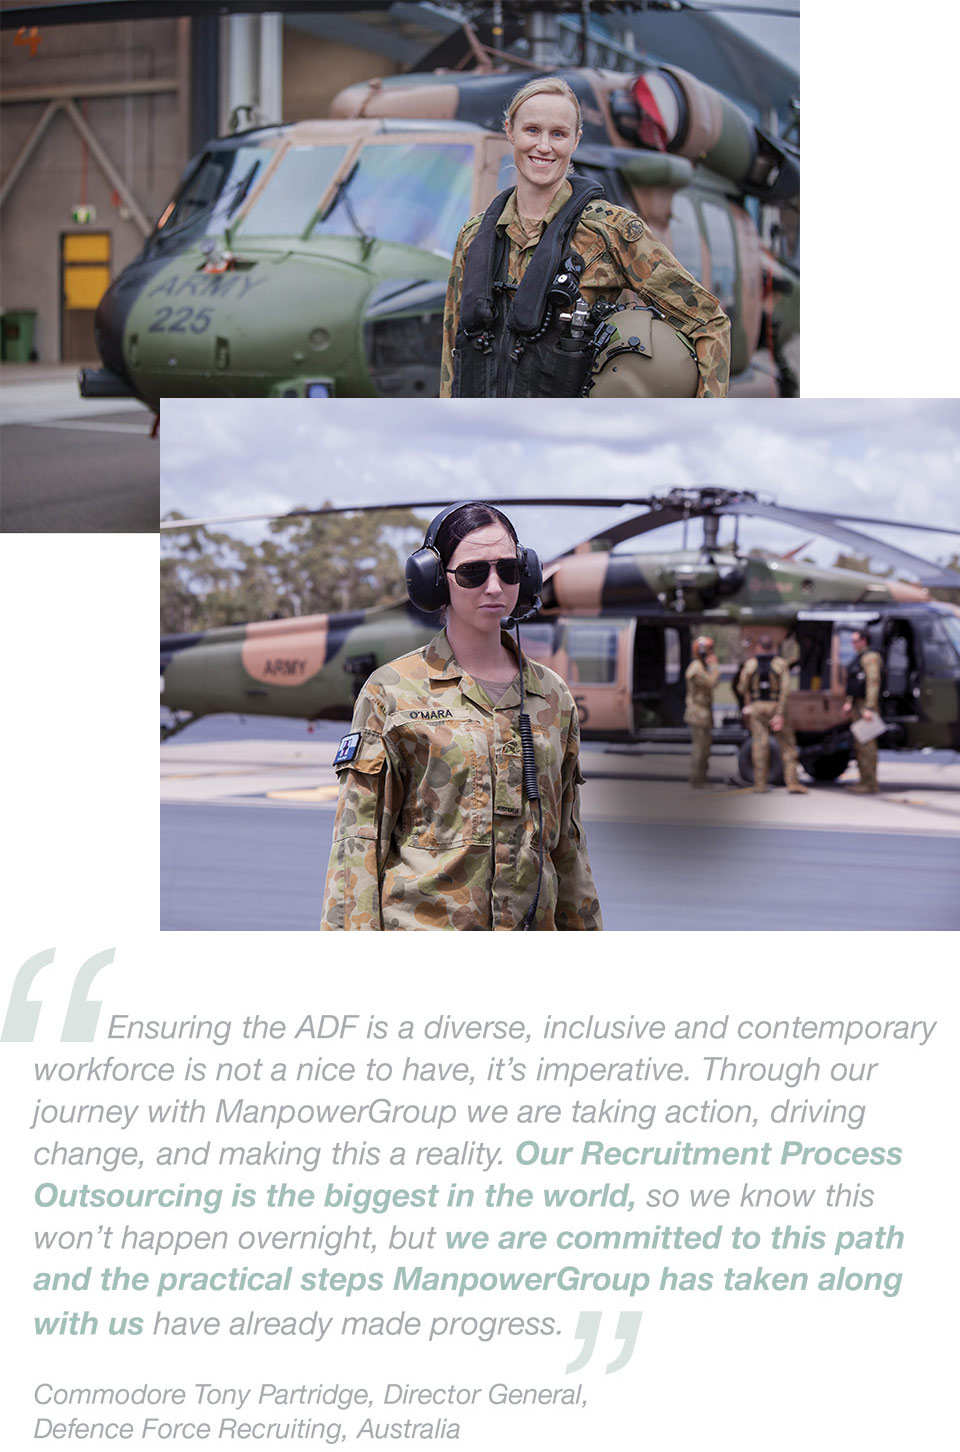 ManpowerGroup Sustainability Australian Defense Force